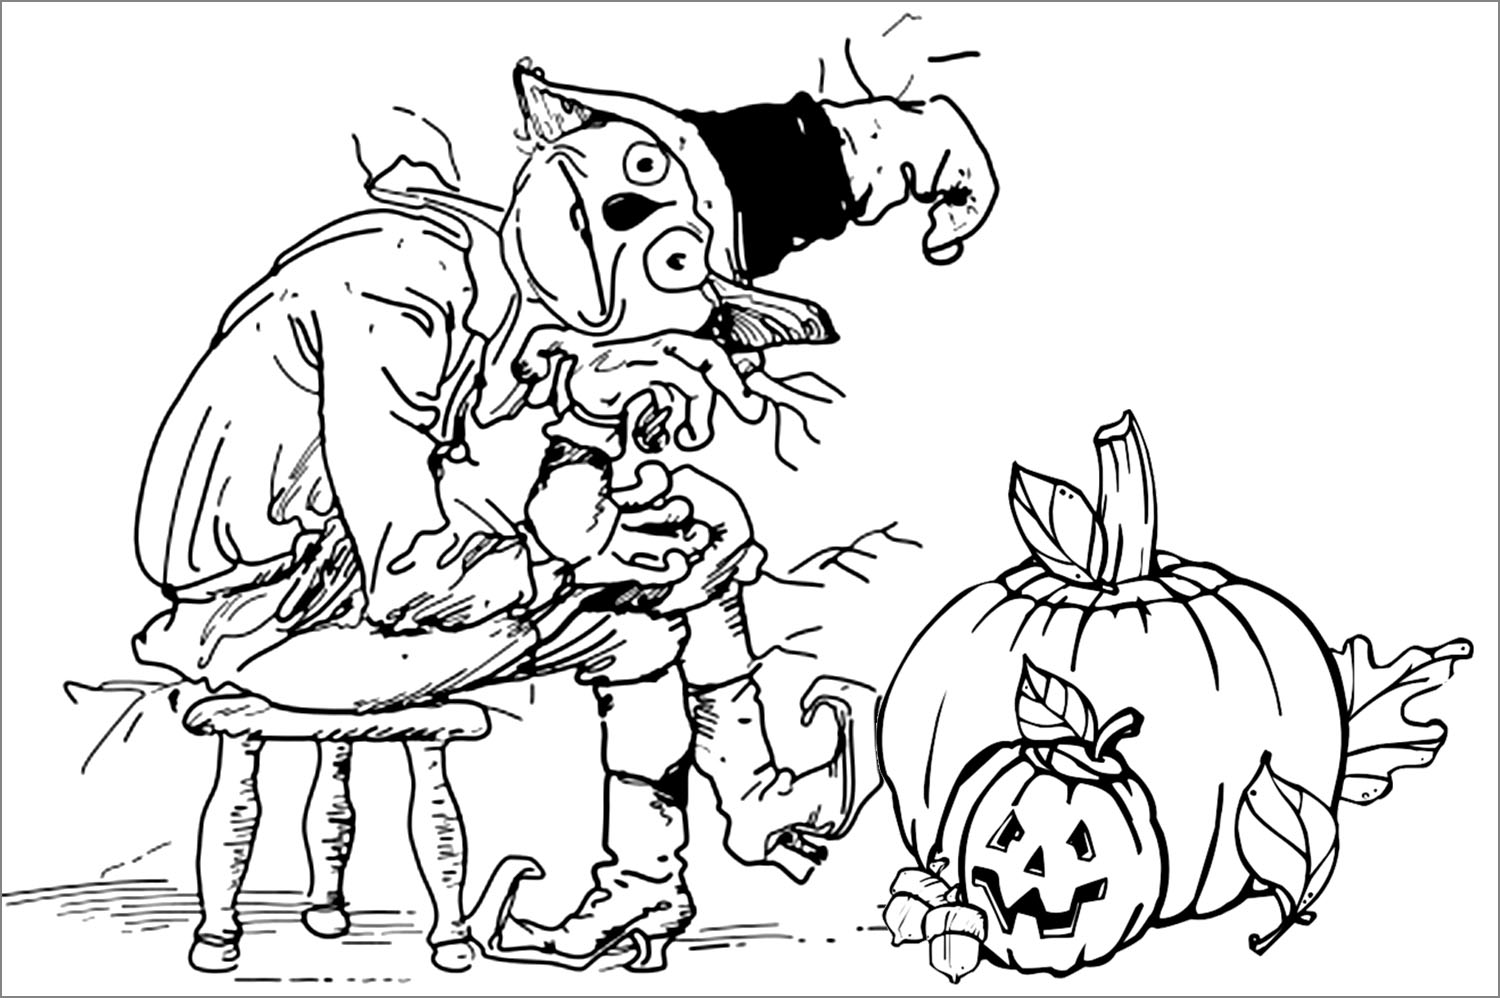 graphic about Free Printable Halloween Coloring Pages known as Free of charge Printable Halloween Coloring Web pages For Grownups at